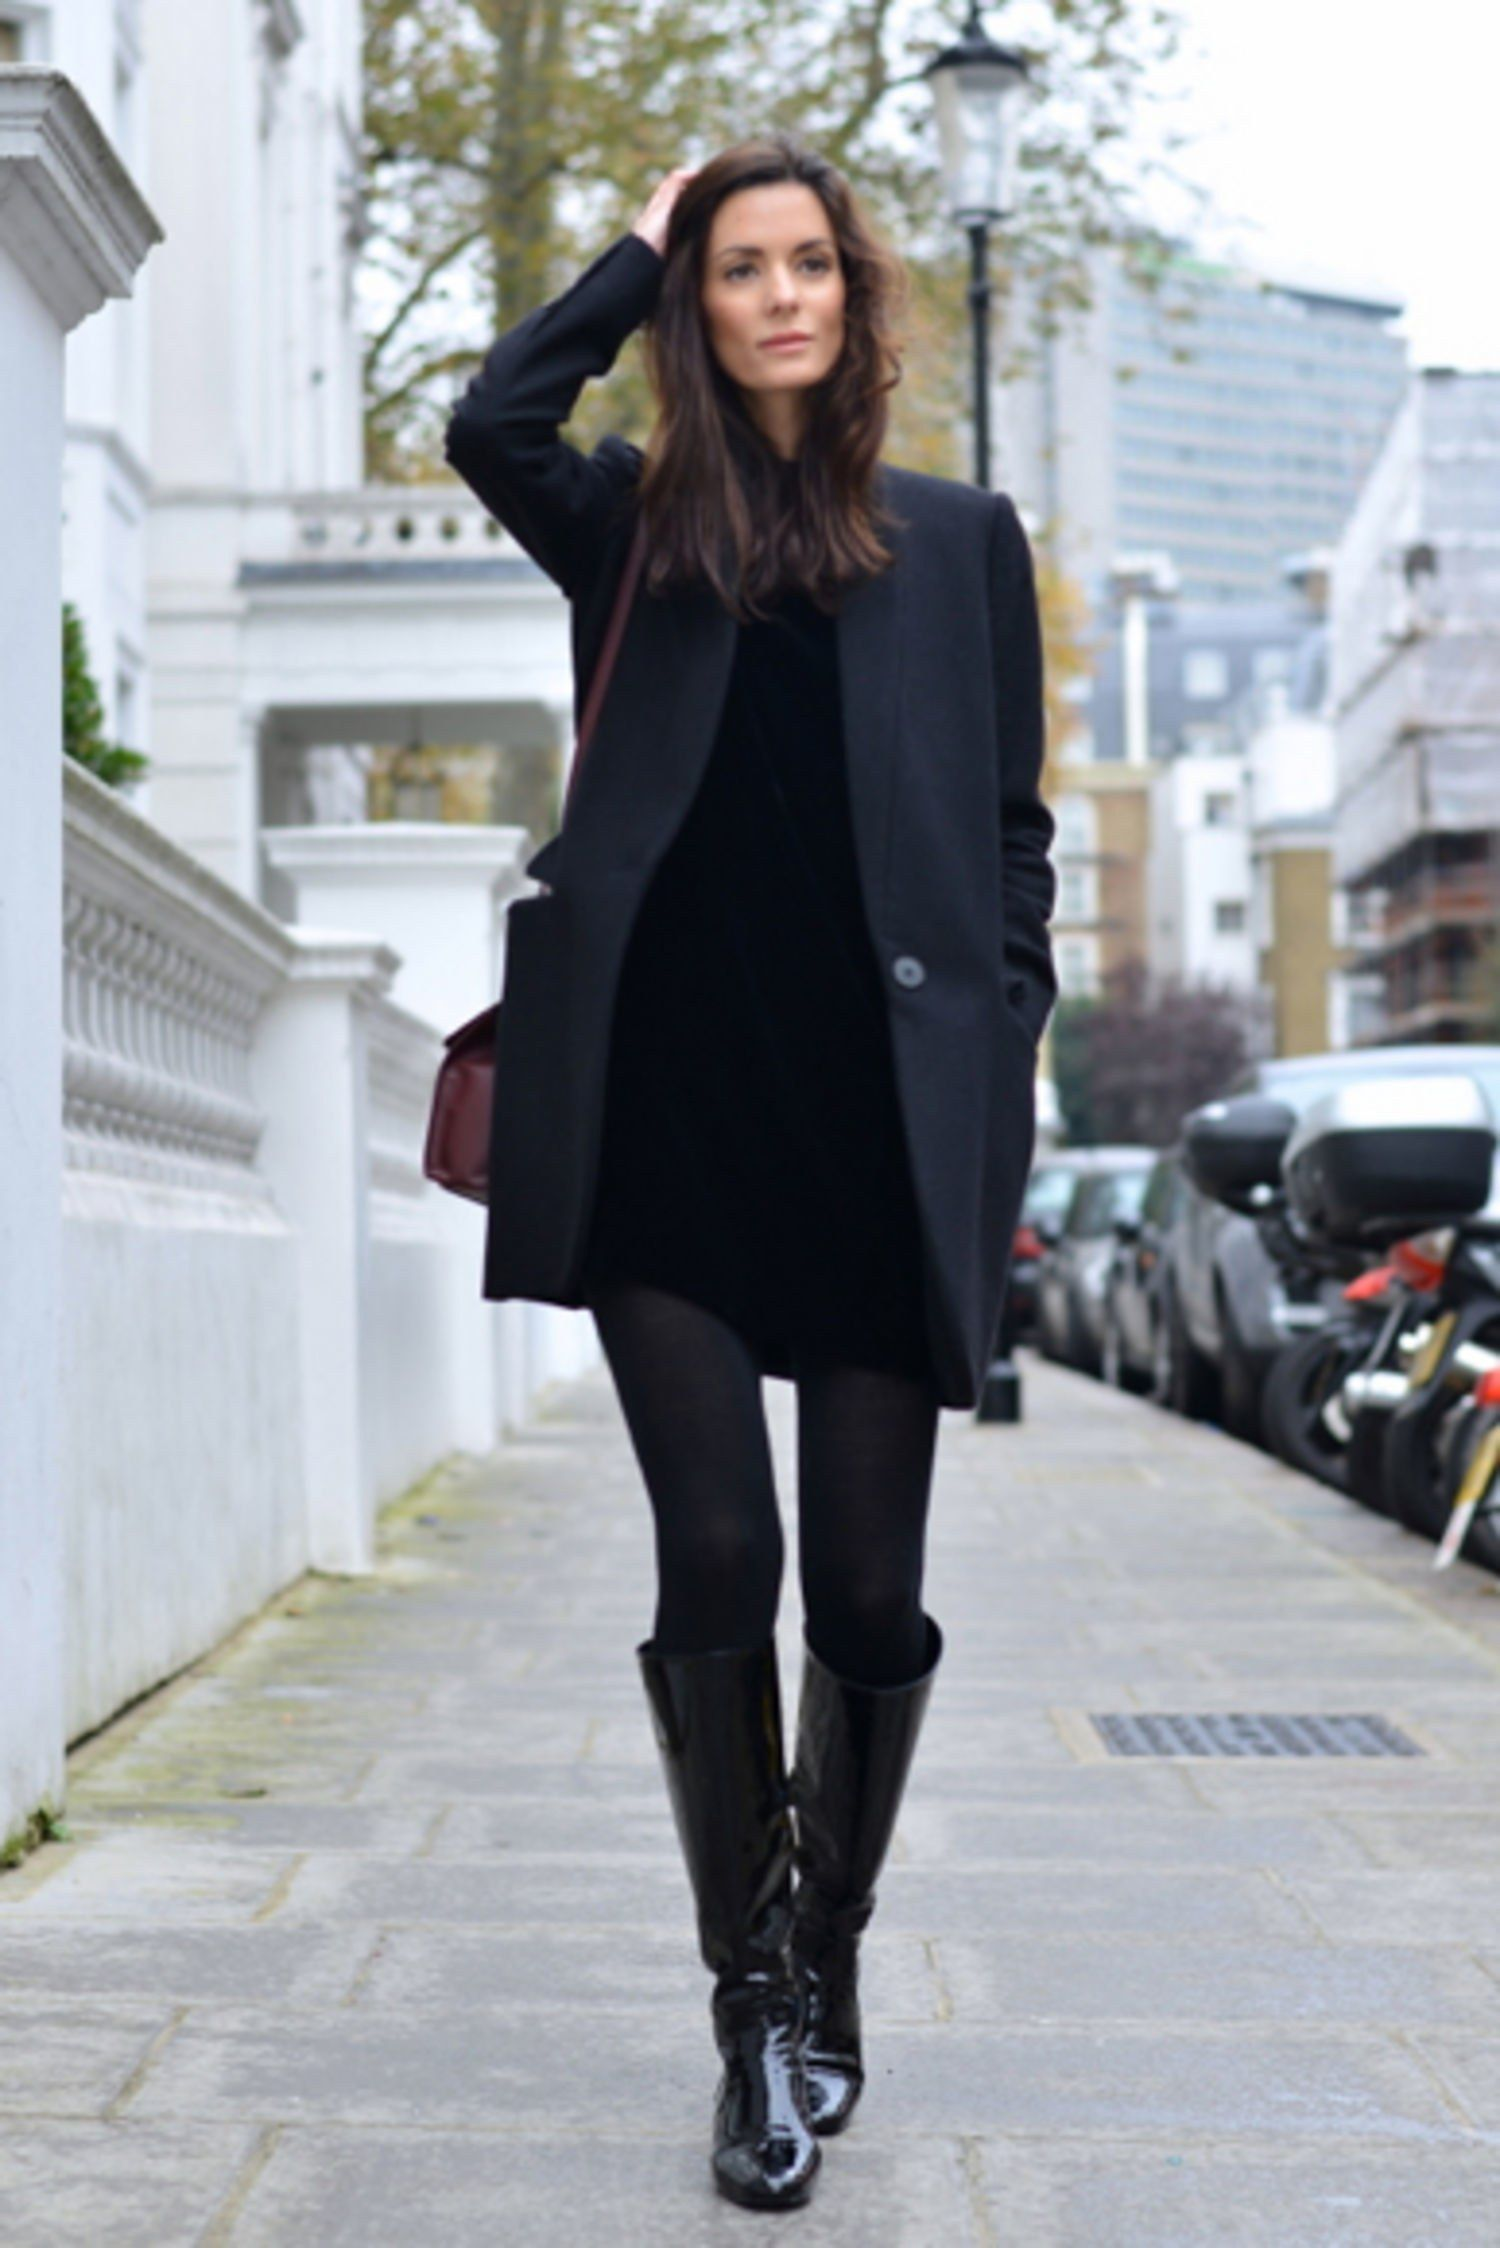 adcf8062e5f Try These 7 Super-Stylish Ways to Wear Your Knee-High Boots Right ...